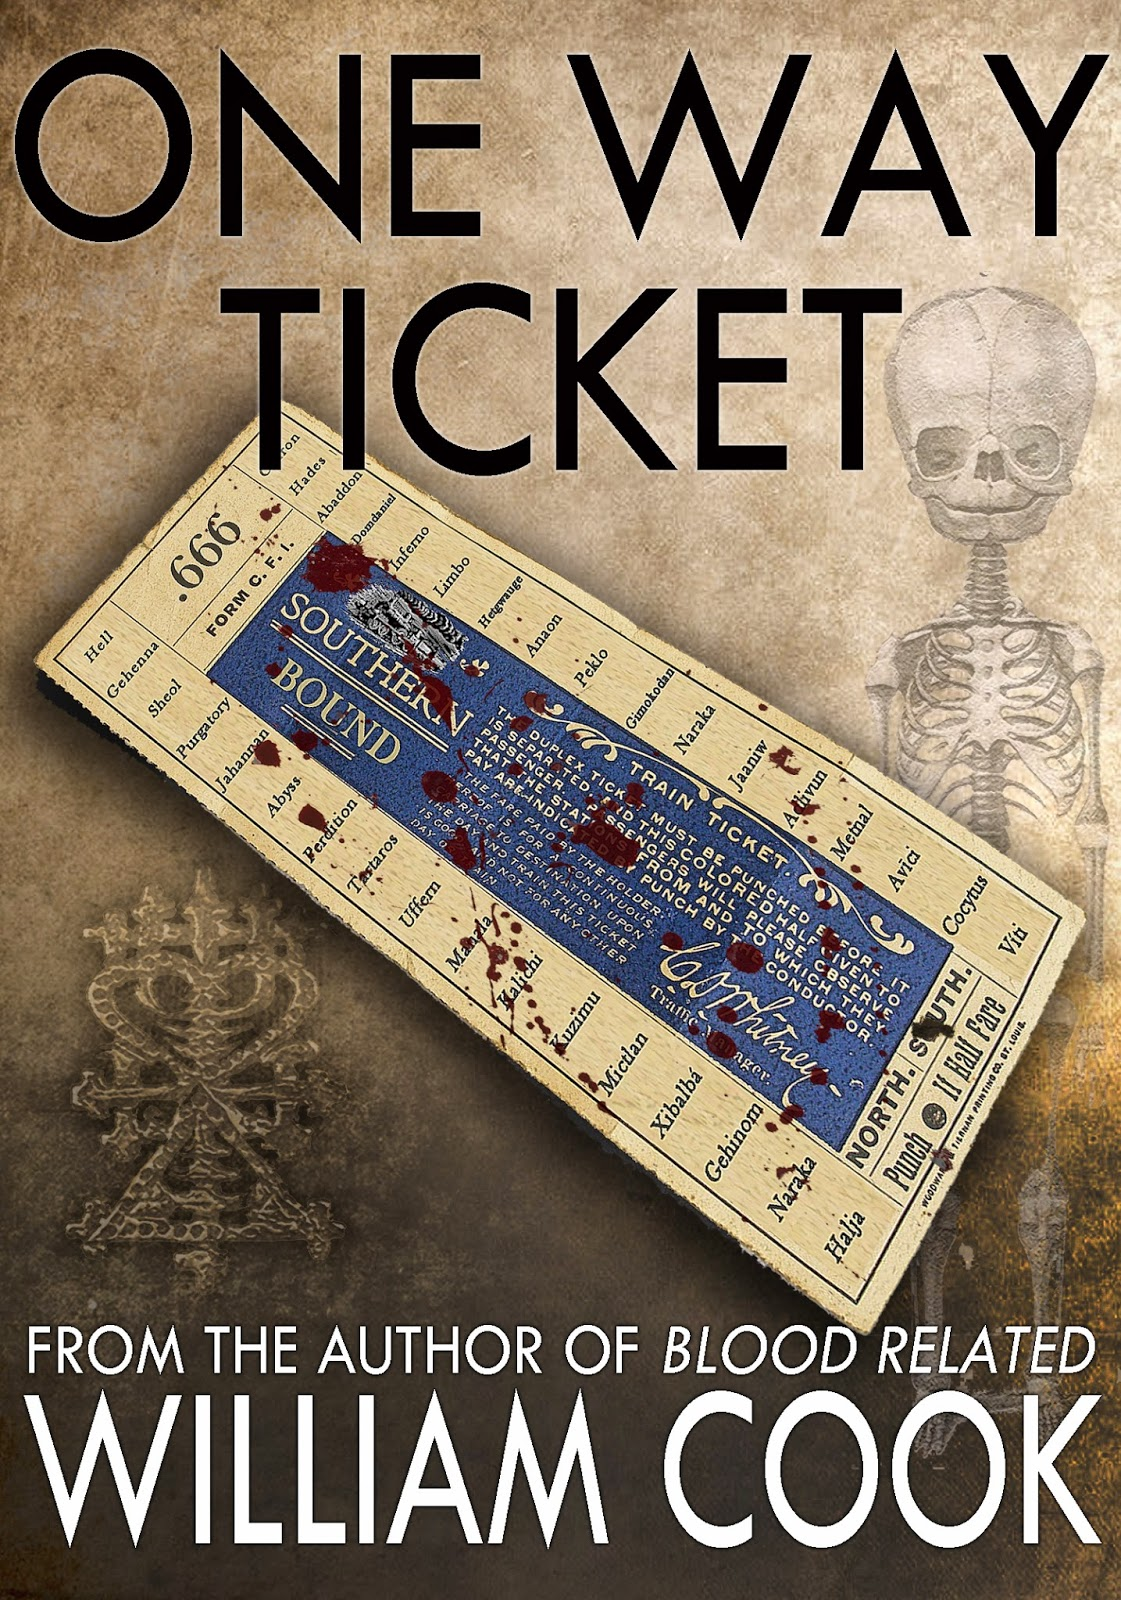 http://www.amazon.com/Ticket-Short-Horror-Fiction-Book-ebook/dp/B00RAMNUBM/ref=la_B003PA513I_1_6?s=books&ie=UTF8&qid=1424815754&sr=1-6